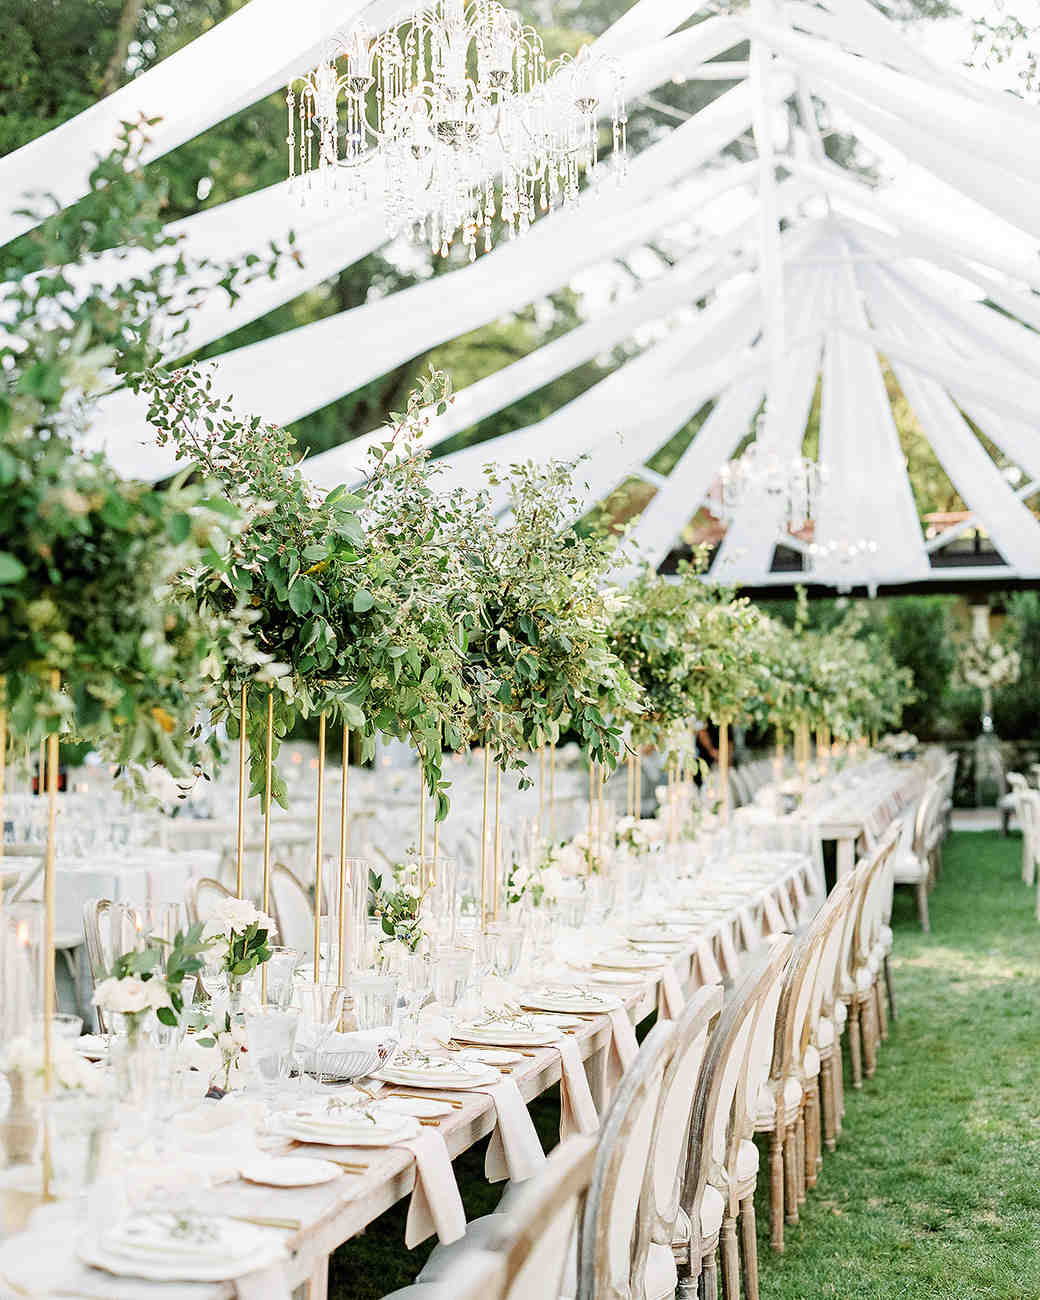 tulle draped over rafters in reception tent